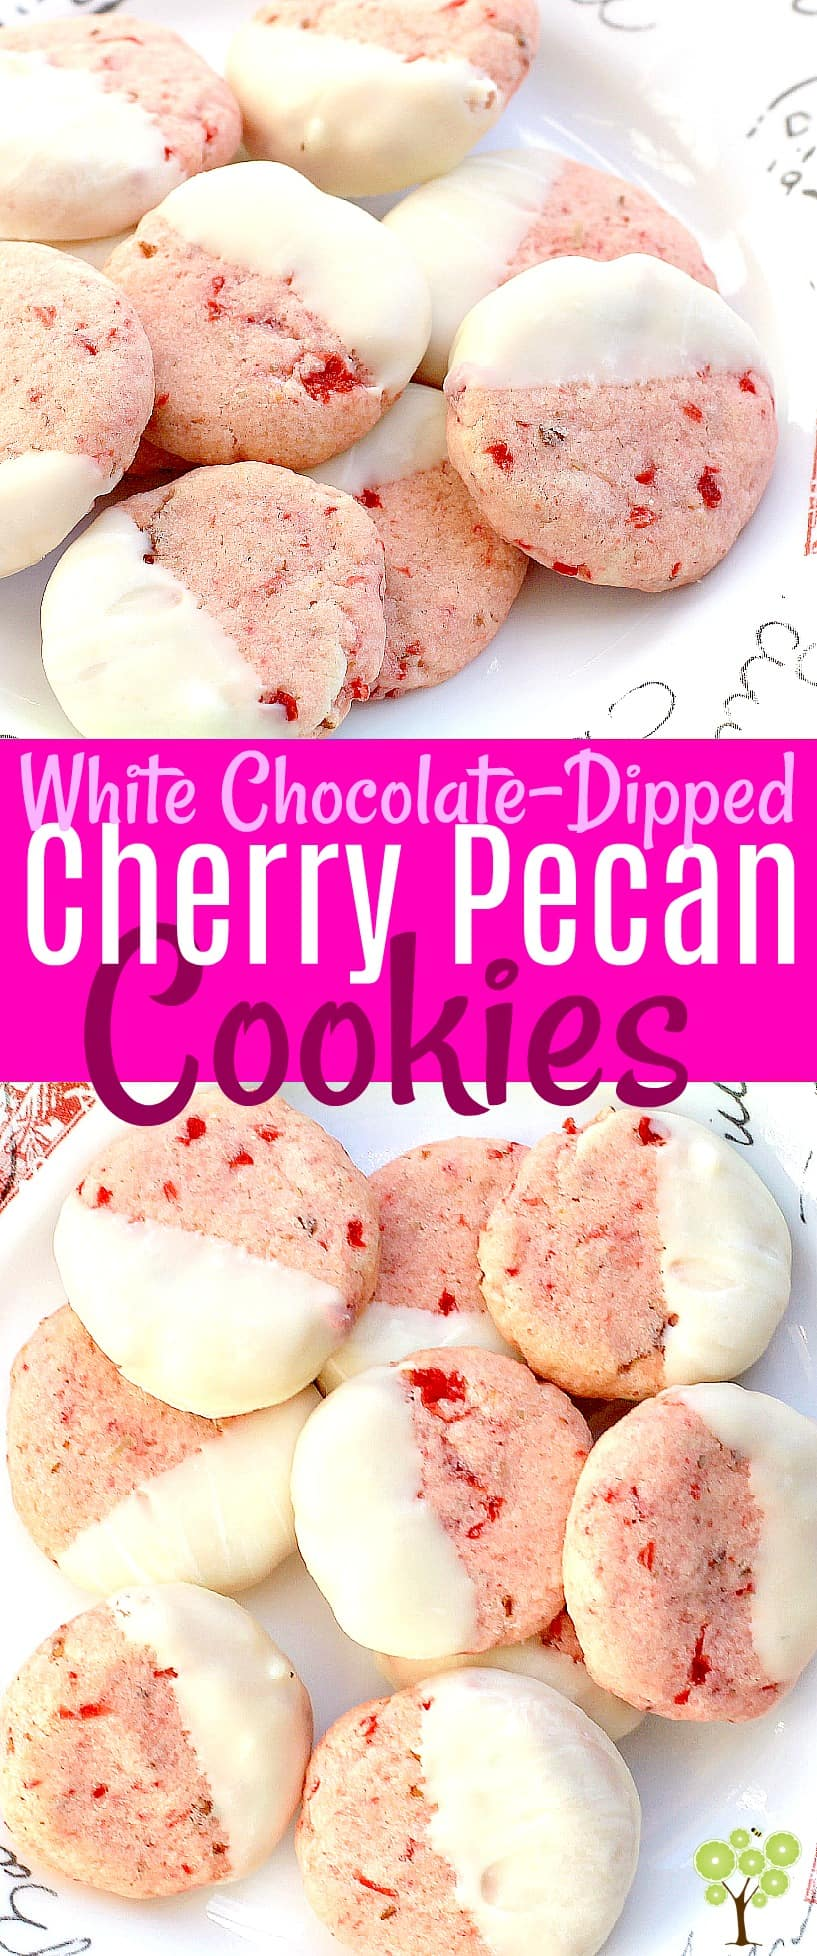 White Chocolate-Dipped, Cherry Pecan Cookies #cookies #food #recipe #pink